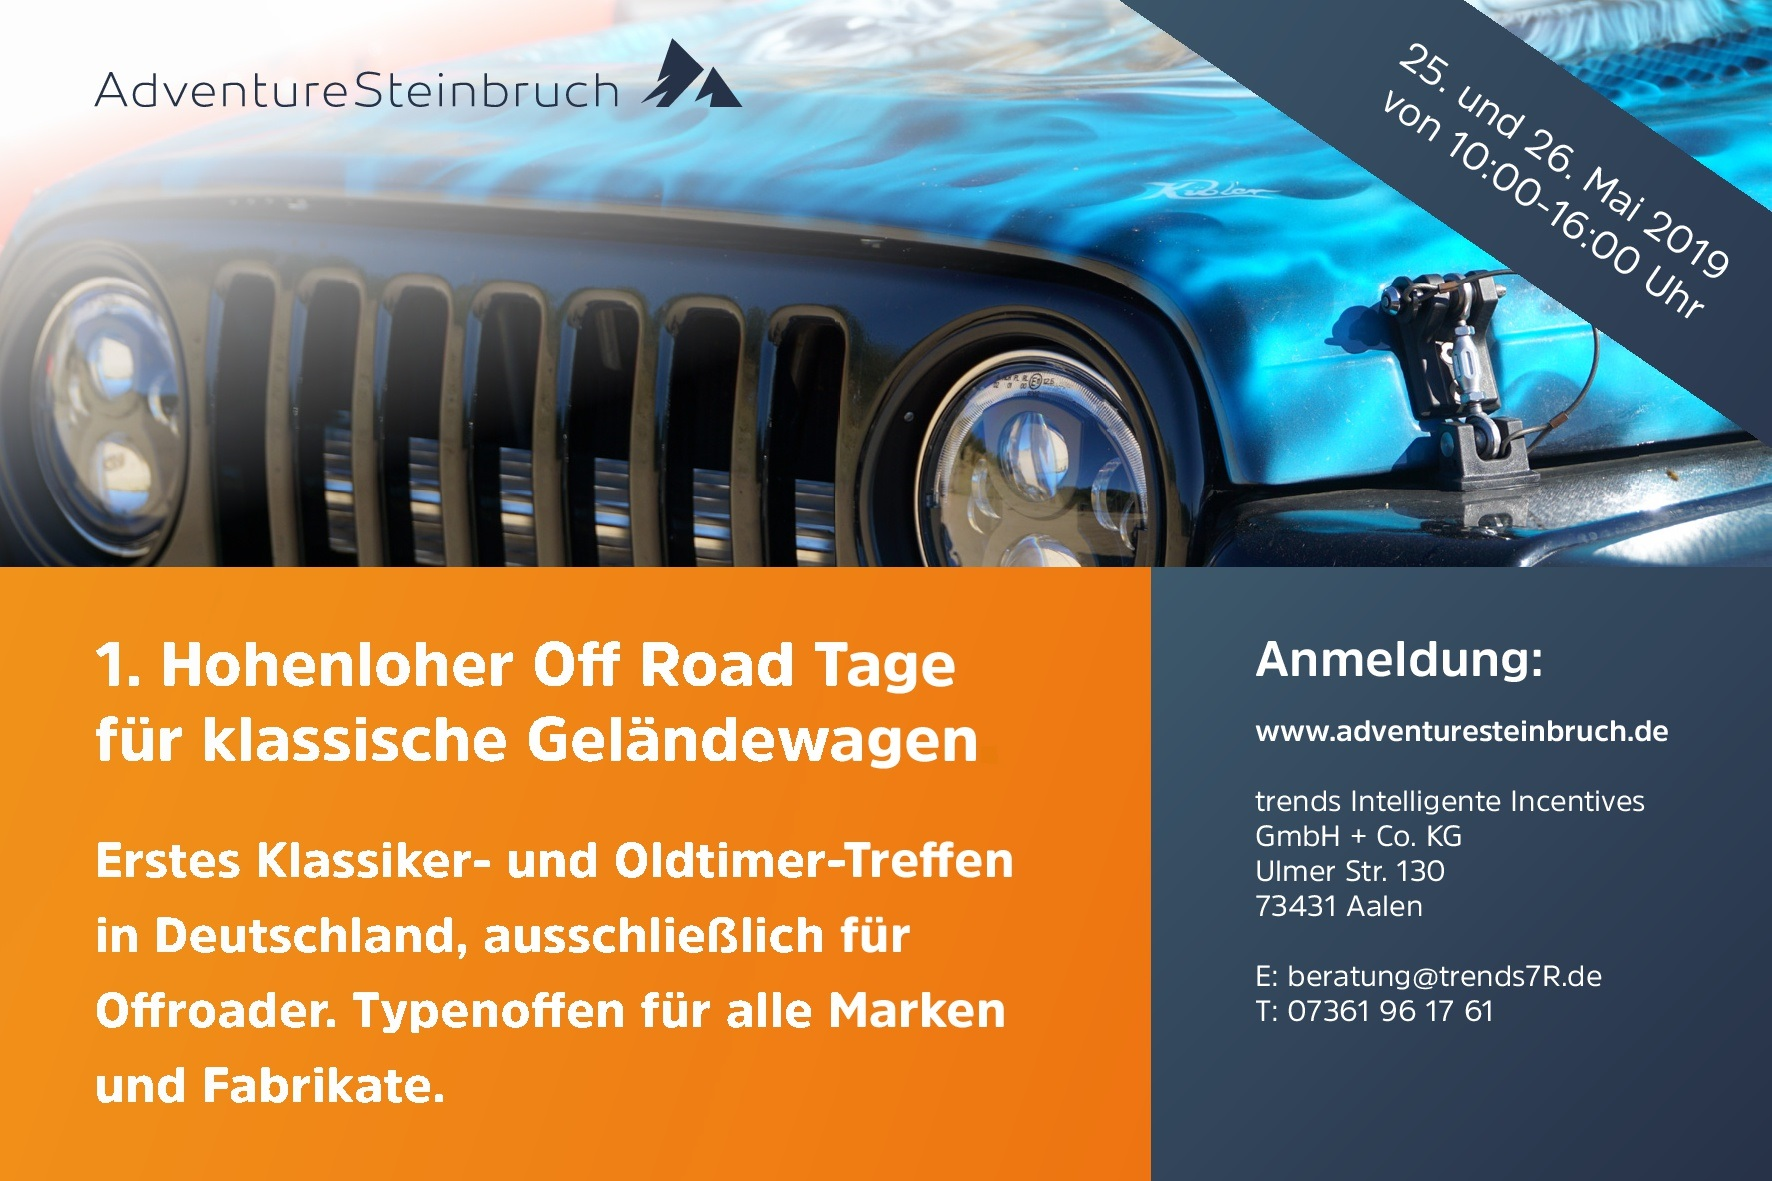 Hohenloher Offroad Tage